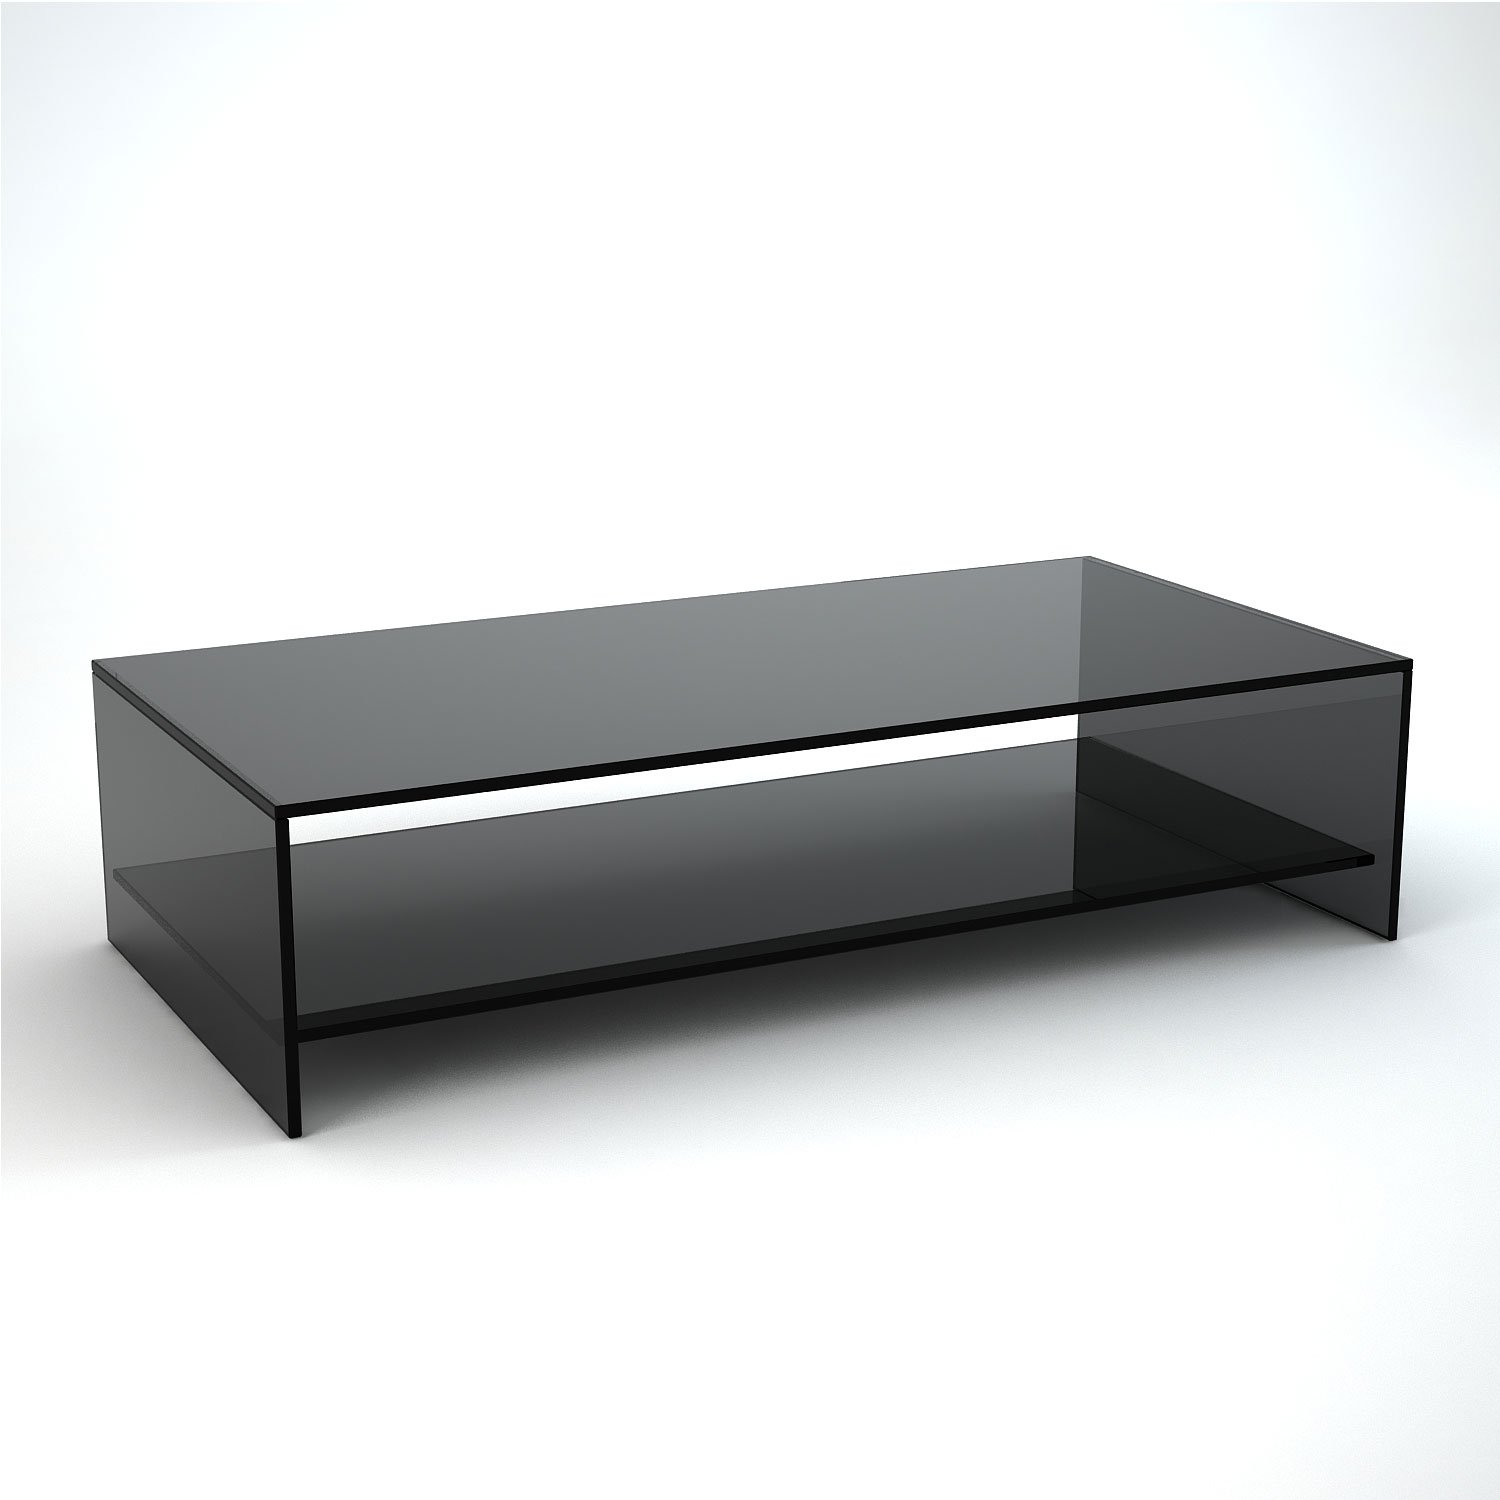 Judd Rectangular Smoked Glass Coffee Table With Shelf Klarity Glass Furniture